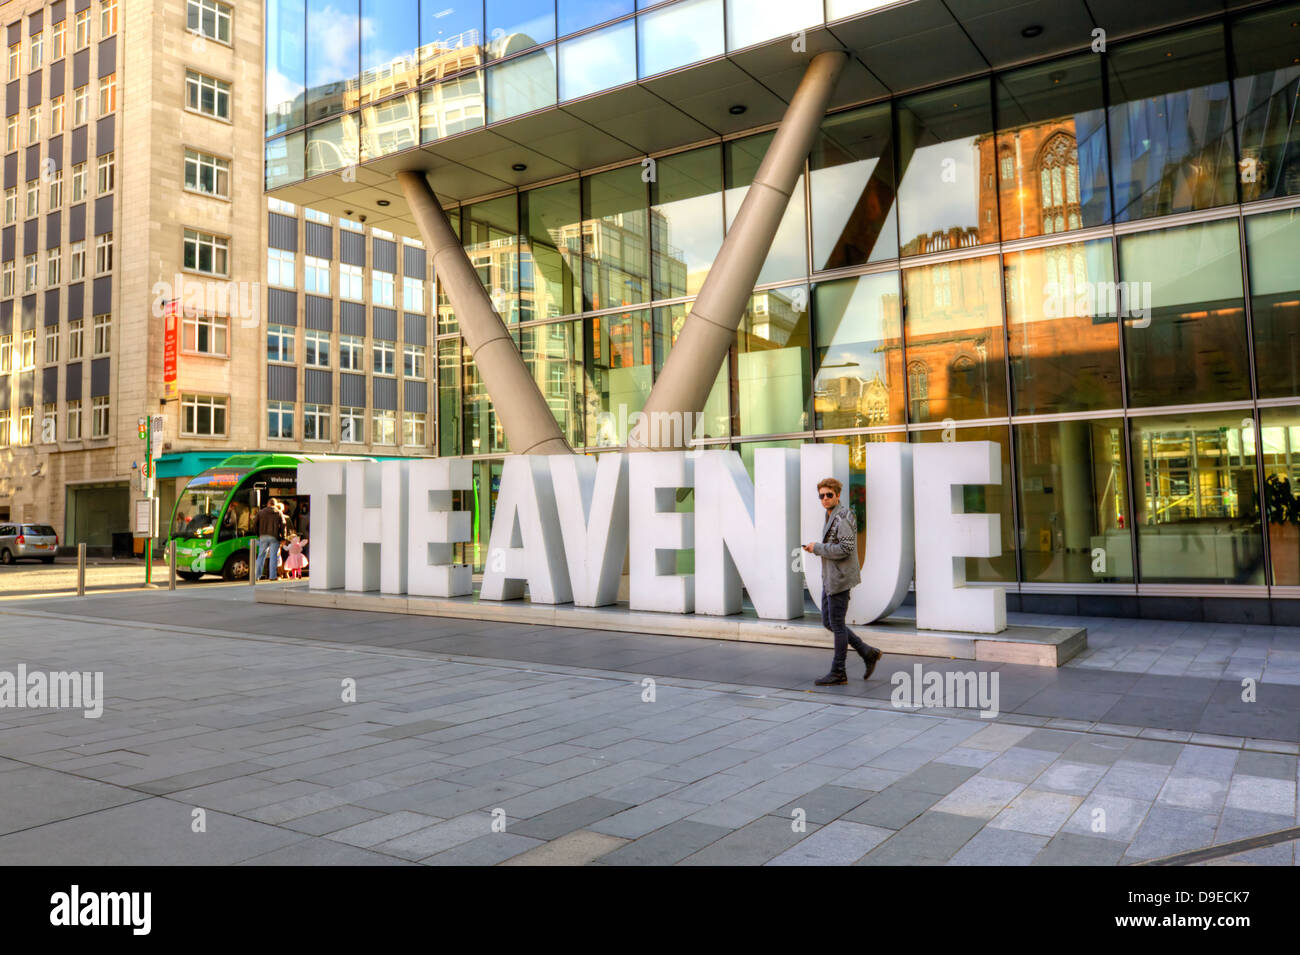 The Avenue Quarter in Manchester, England. - Stock Image